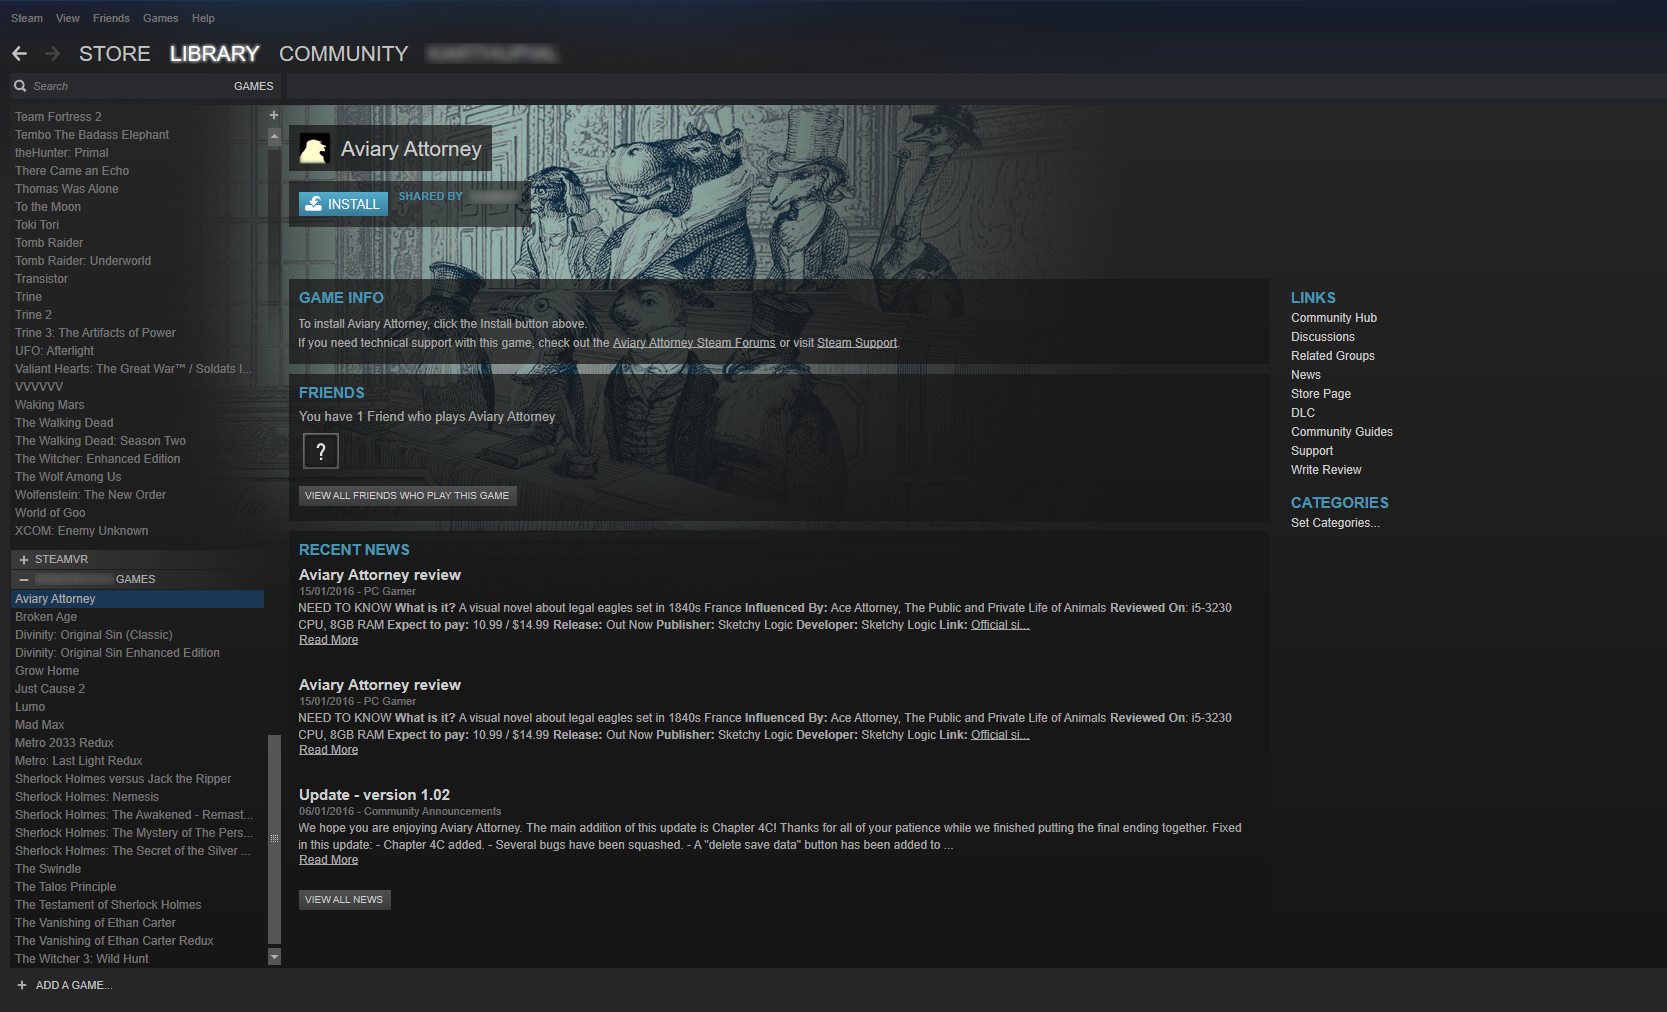 How to share Steam games - WebSetNet